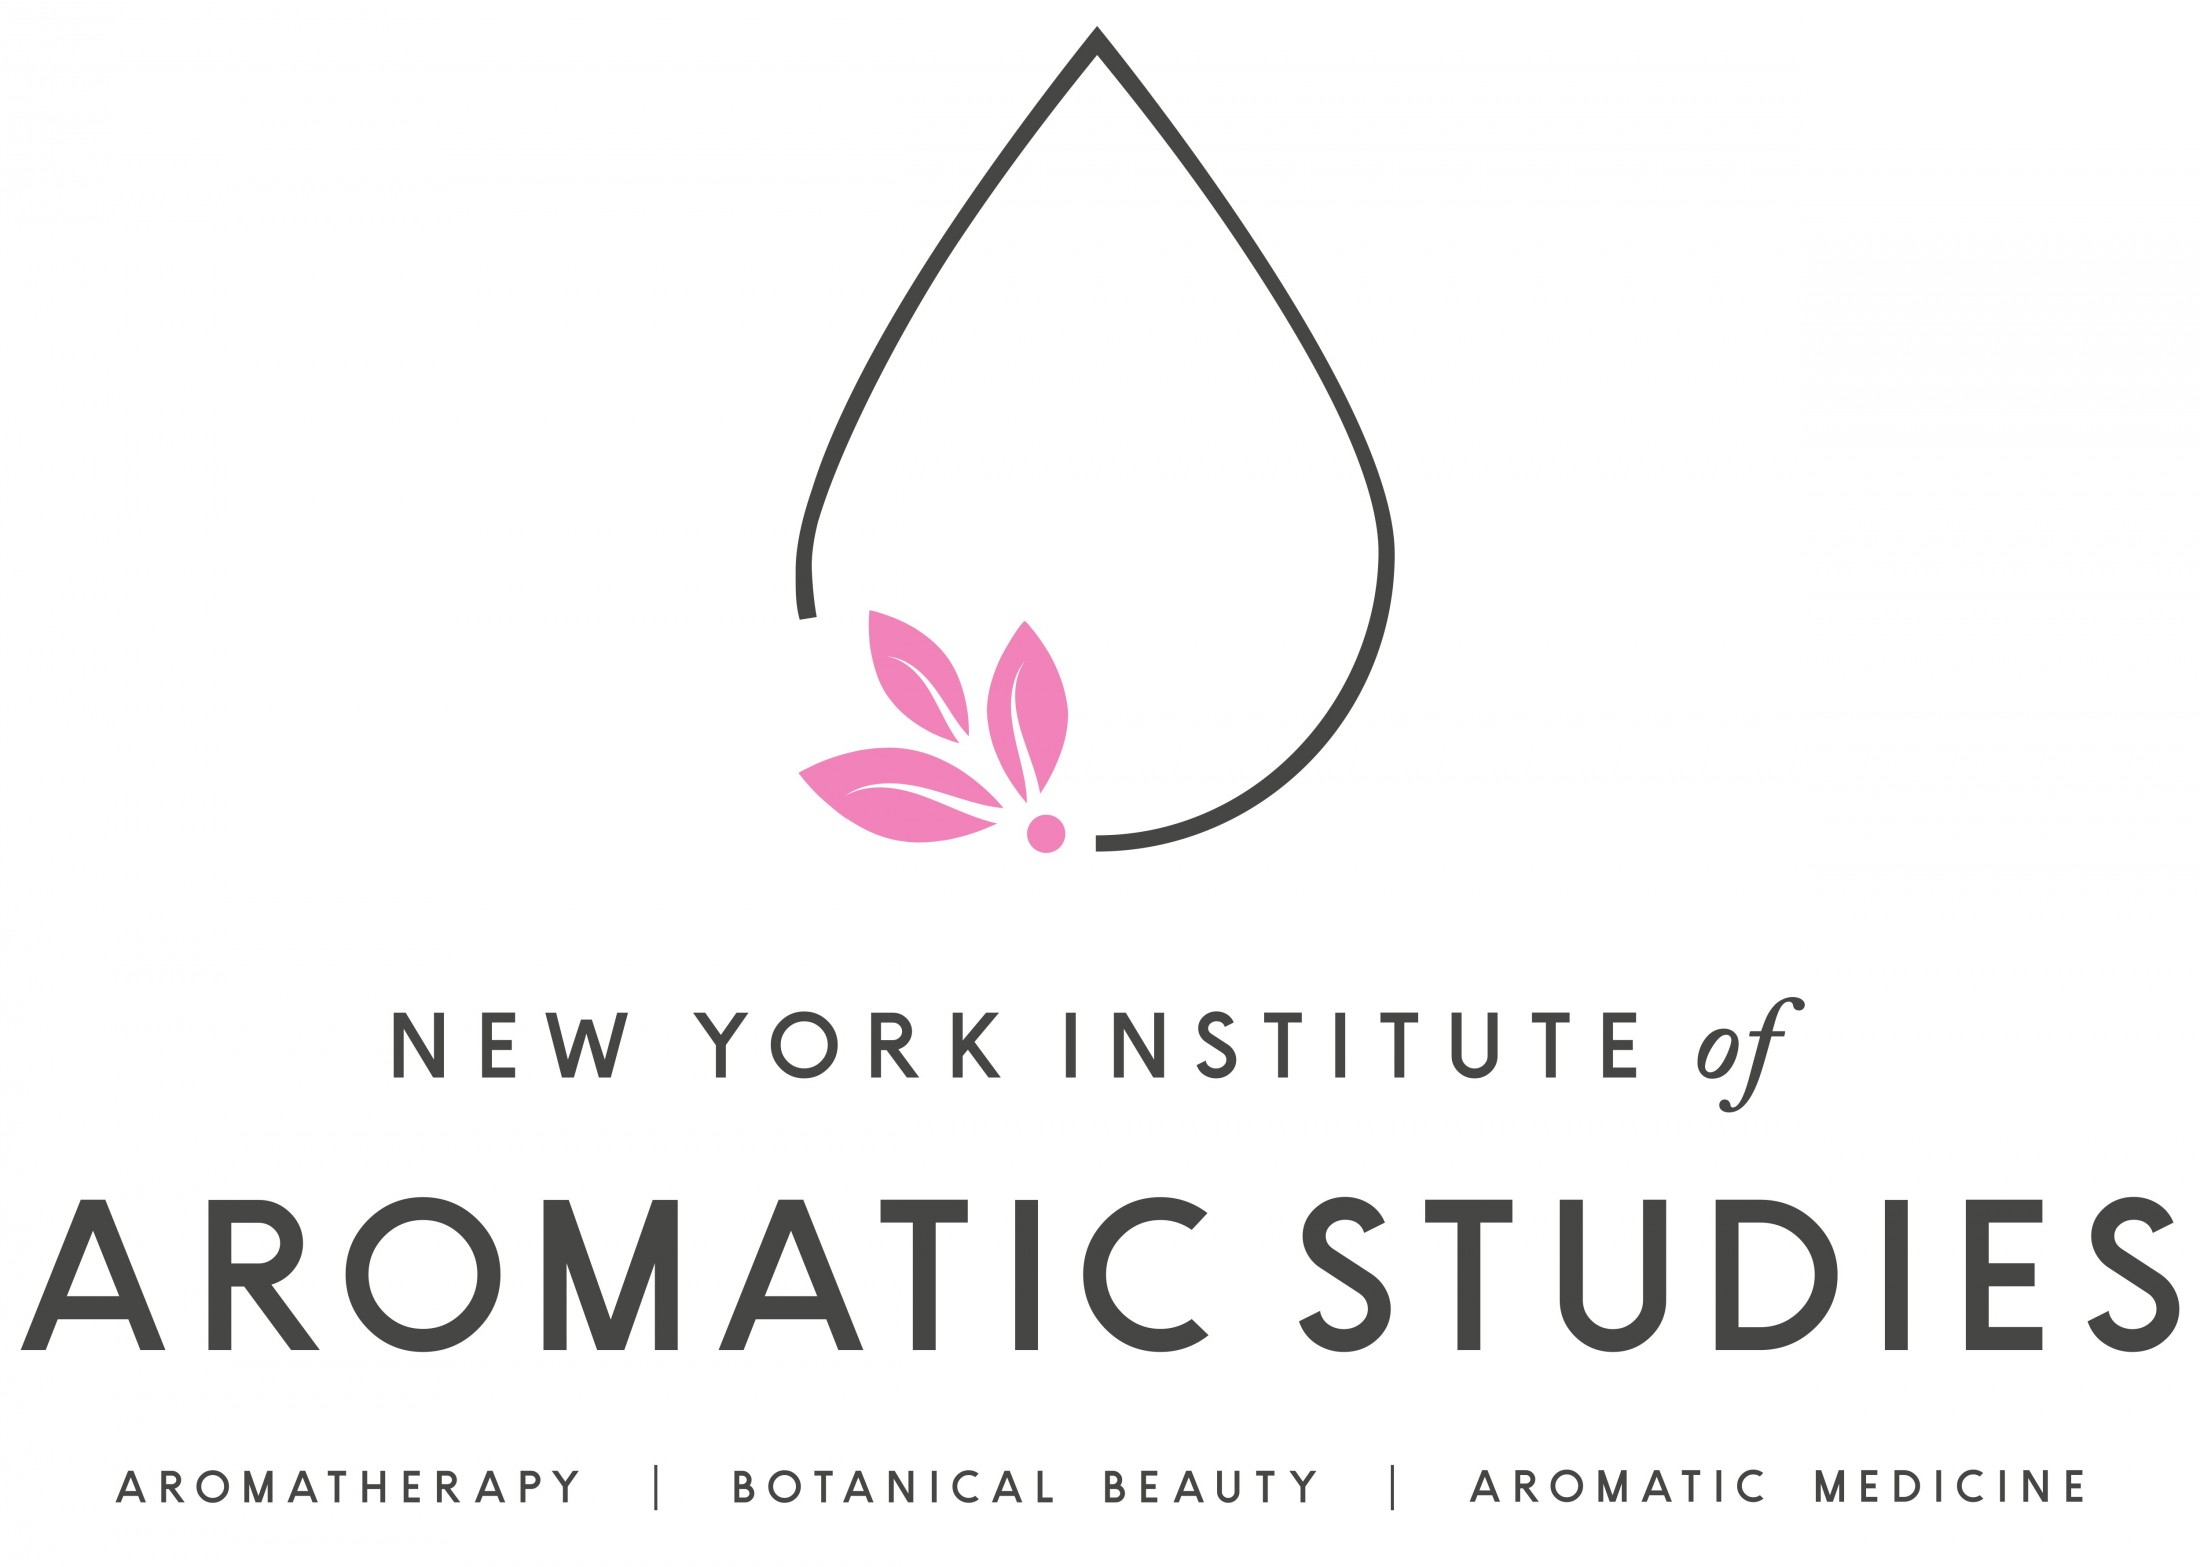 New York Institute of Aromatic Studies